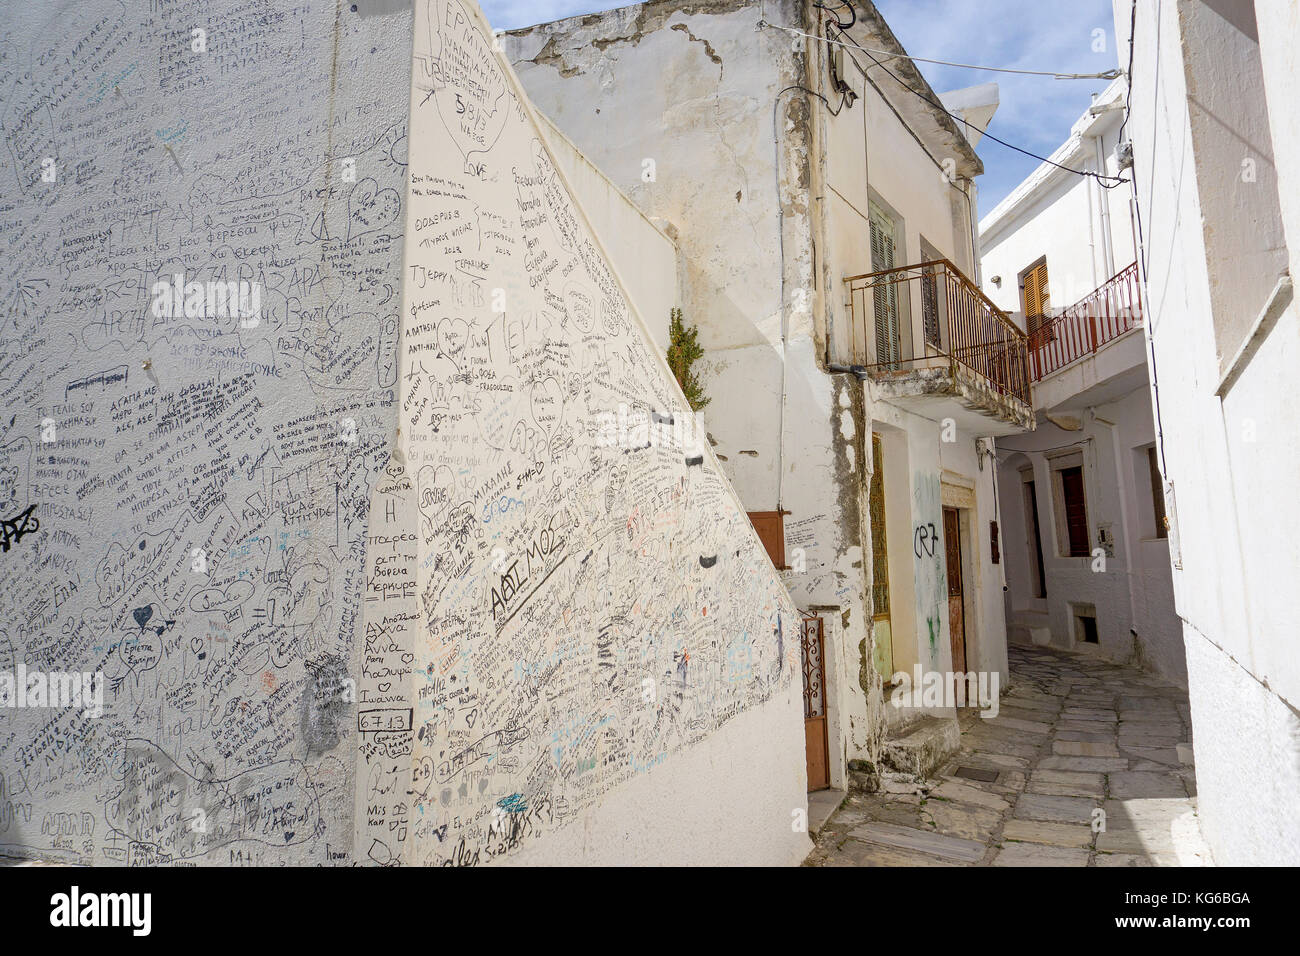 Wall covered with writings and paintings, mountain village Apiranthos, Naxos island, Cyclades, Aegean, Greece - Stock Image